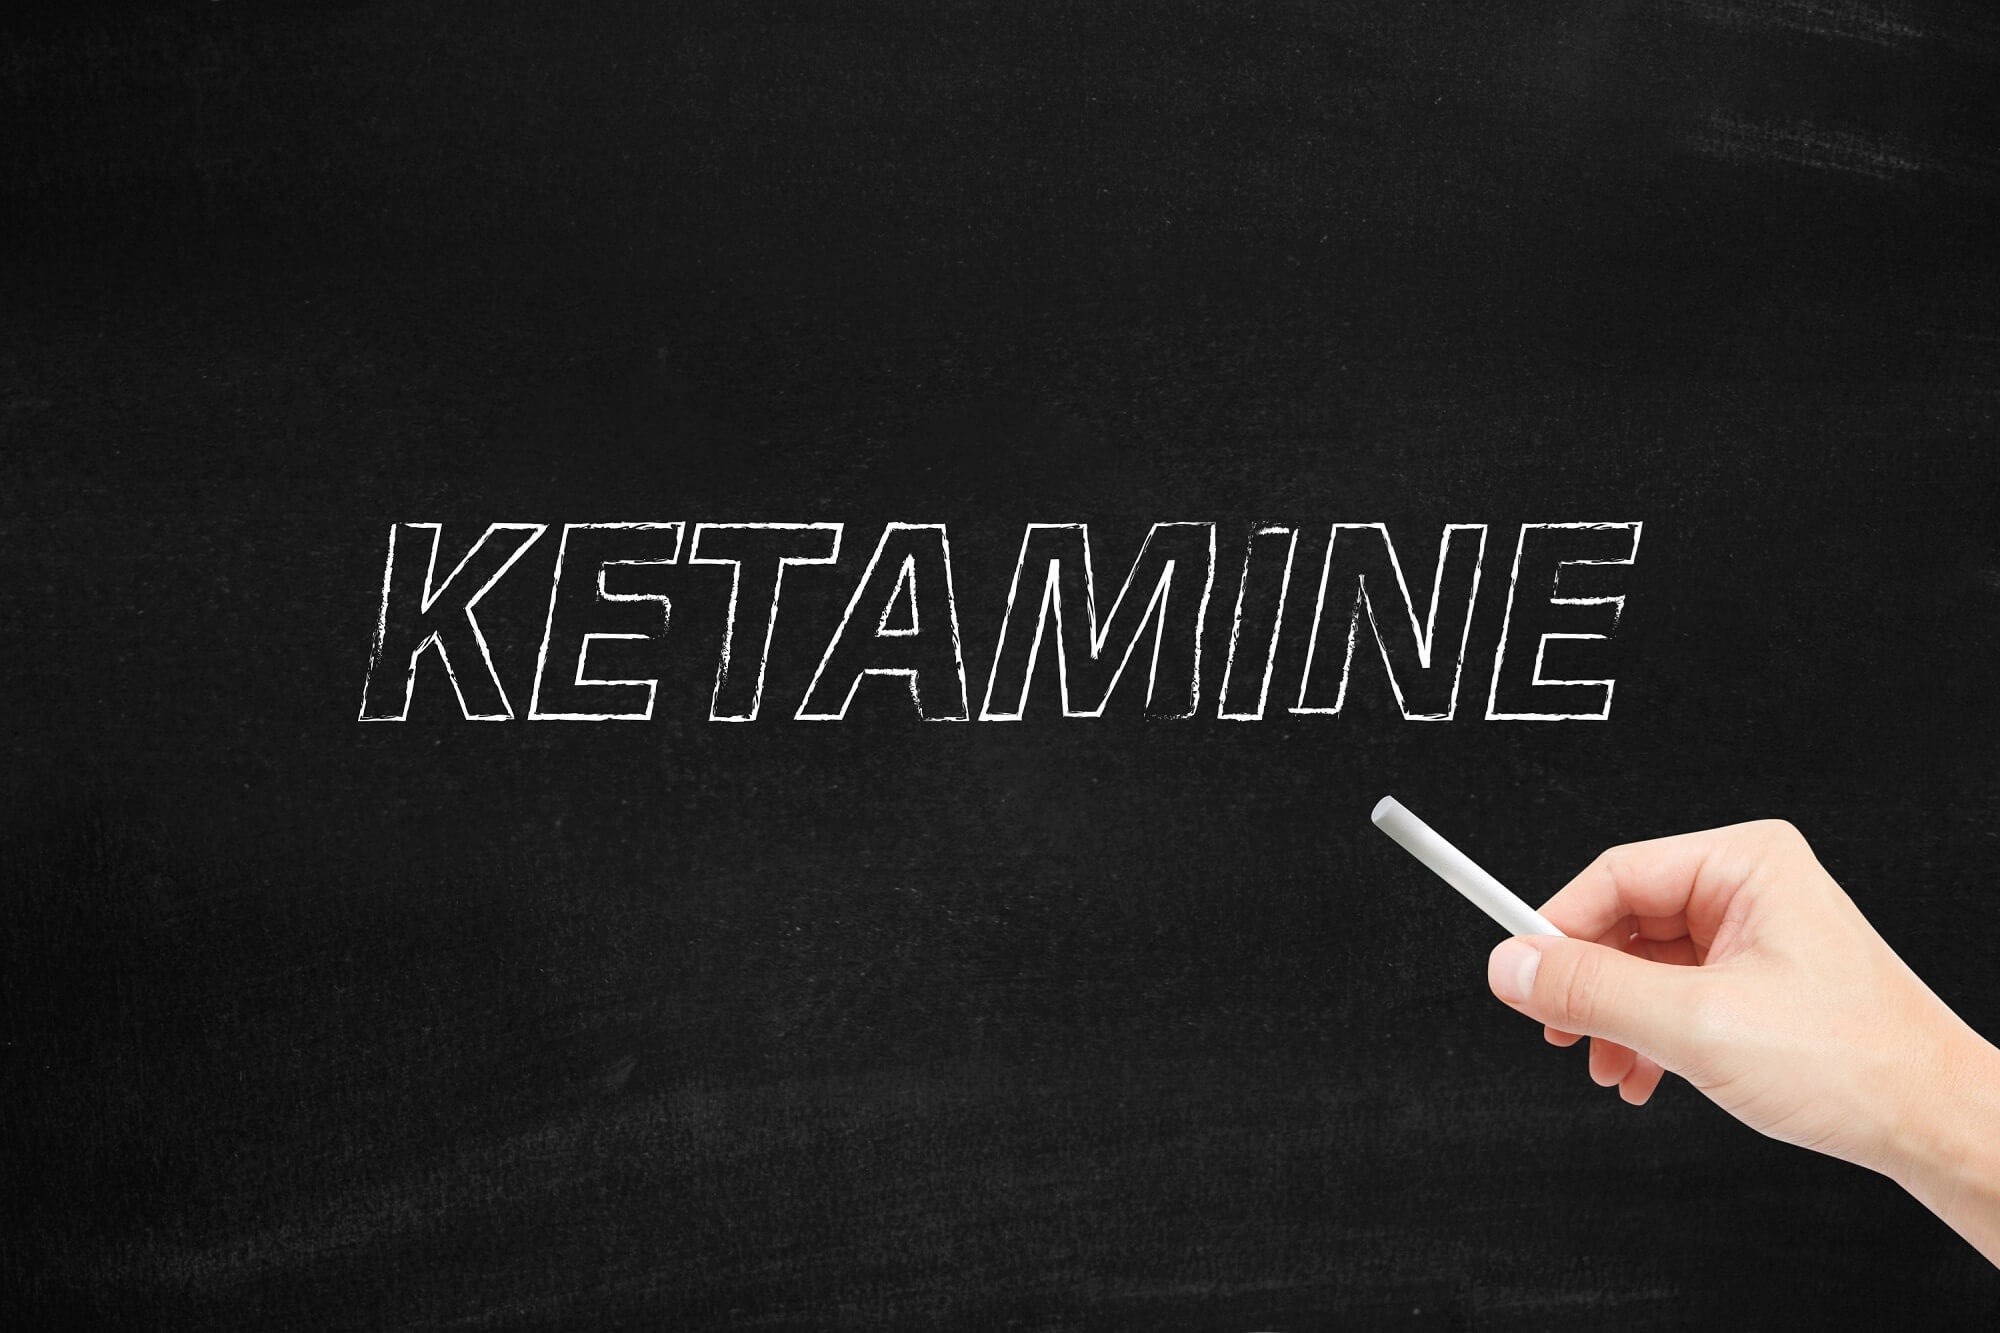 Efficacy, Safety of Long-Term Ketamine Administration Still In Question